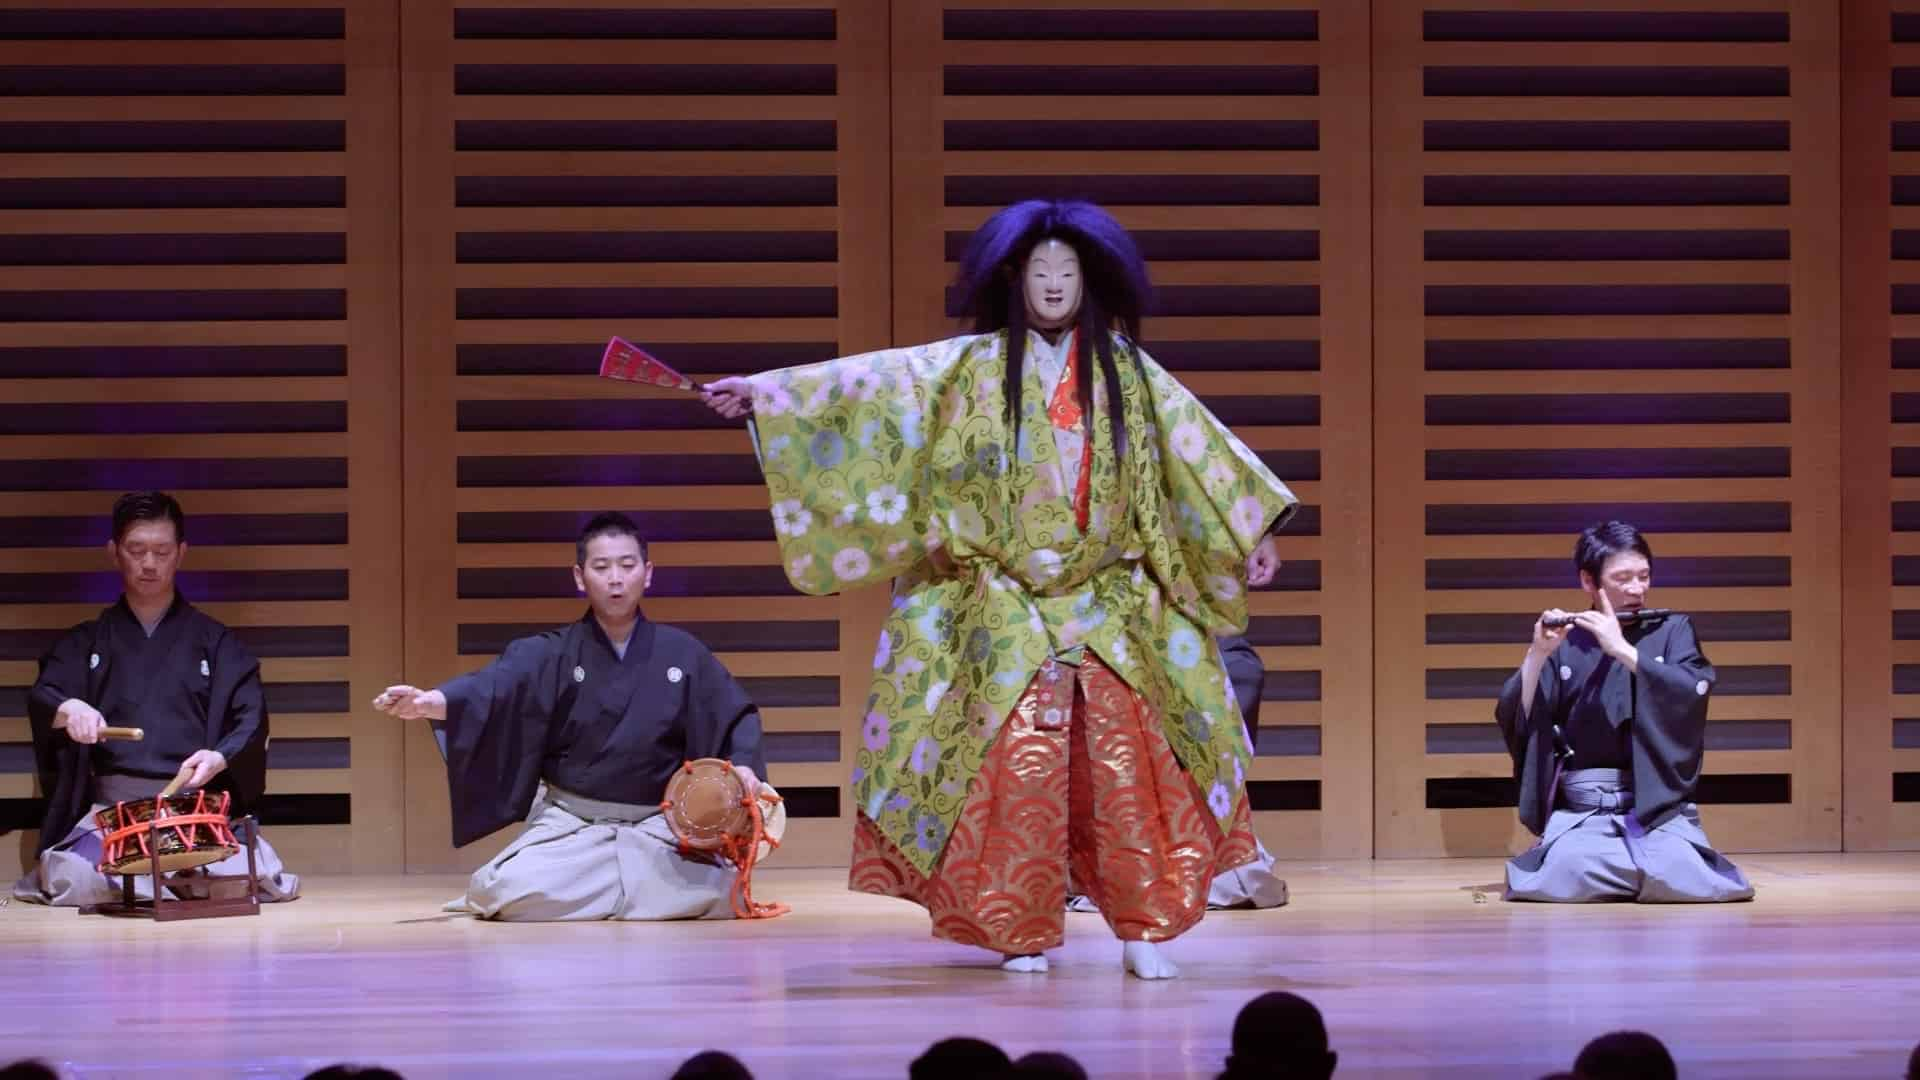 Meet the Noh Performers